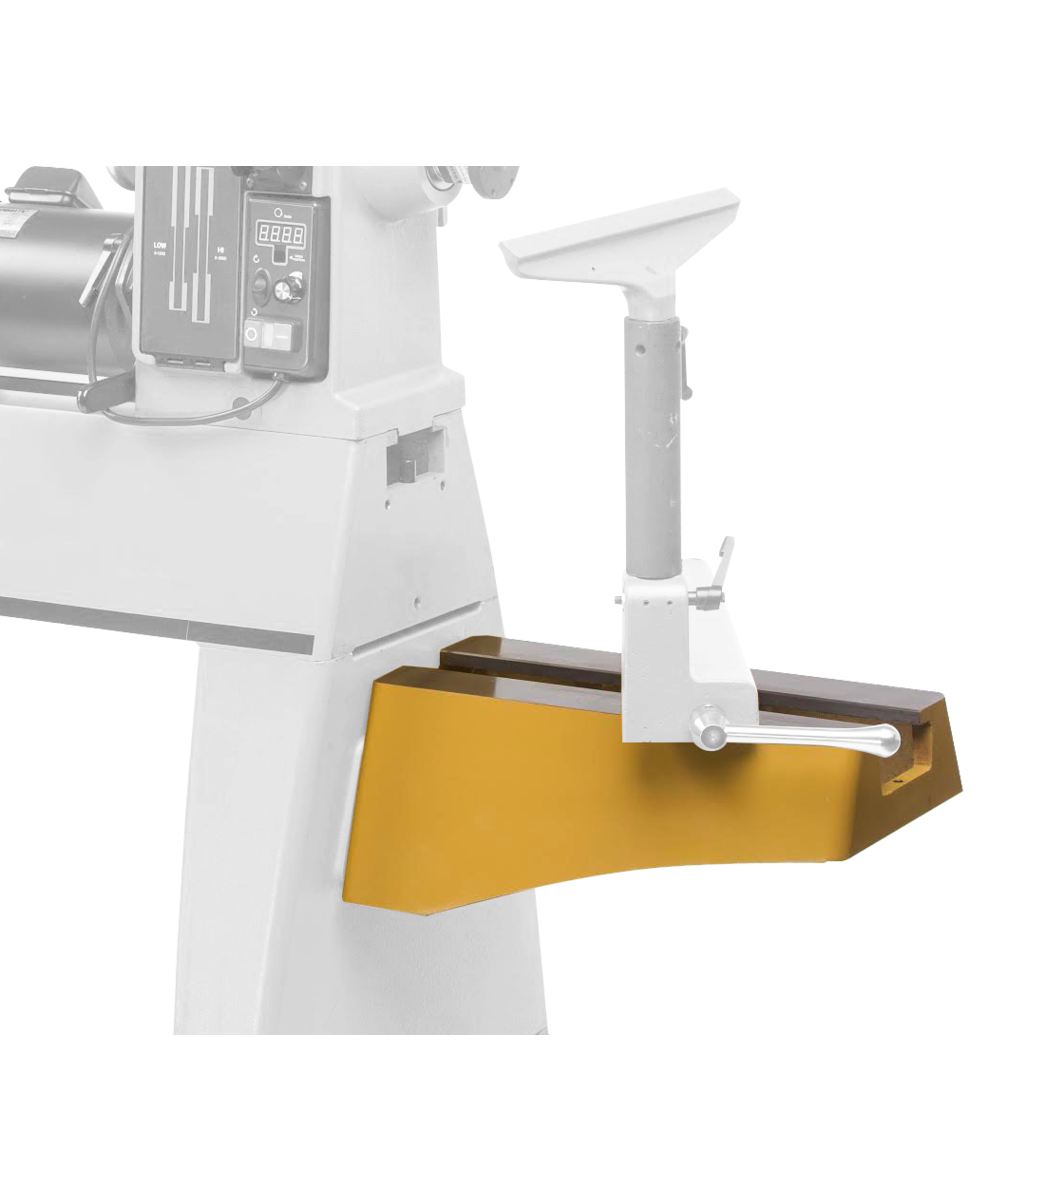 The Powermatic 3520C Bed Extension in Woodworking, Bed extension